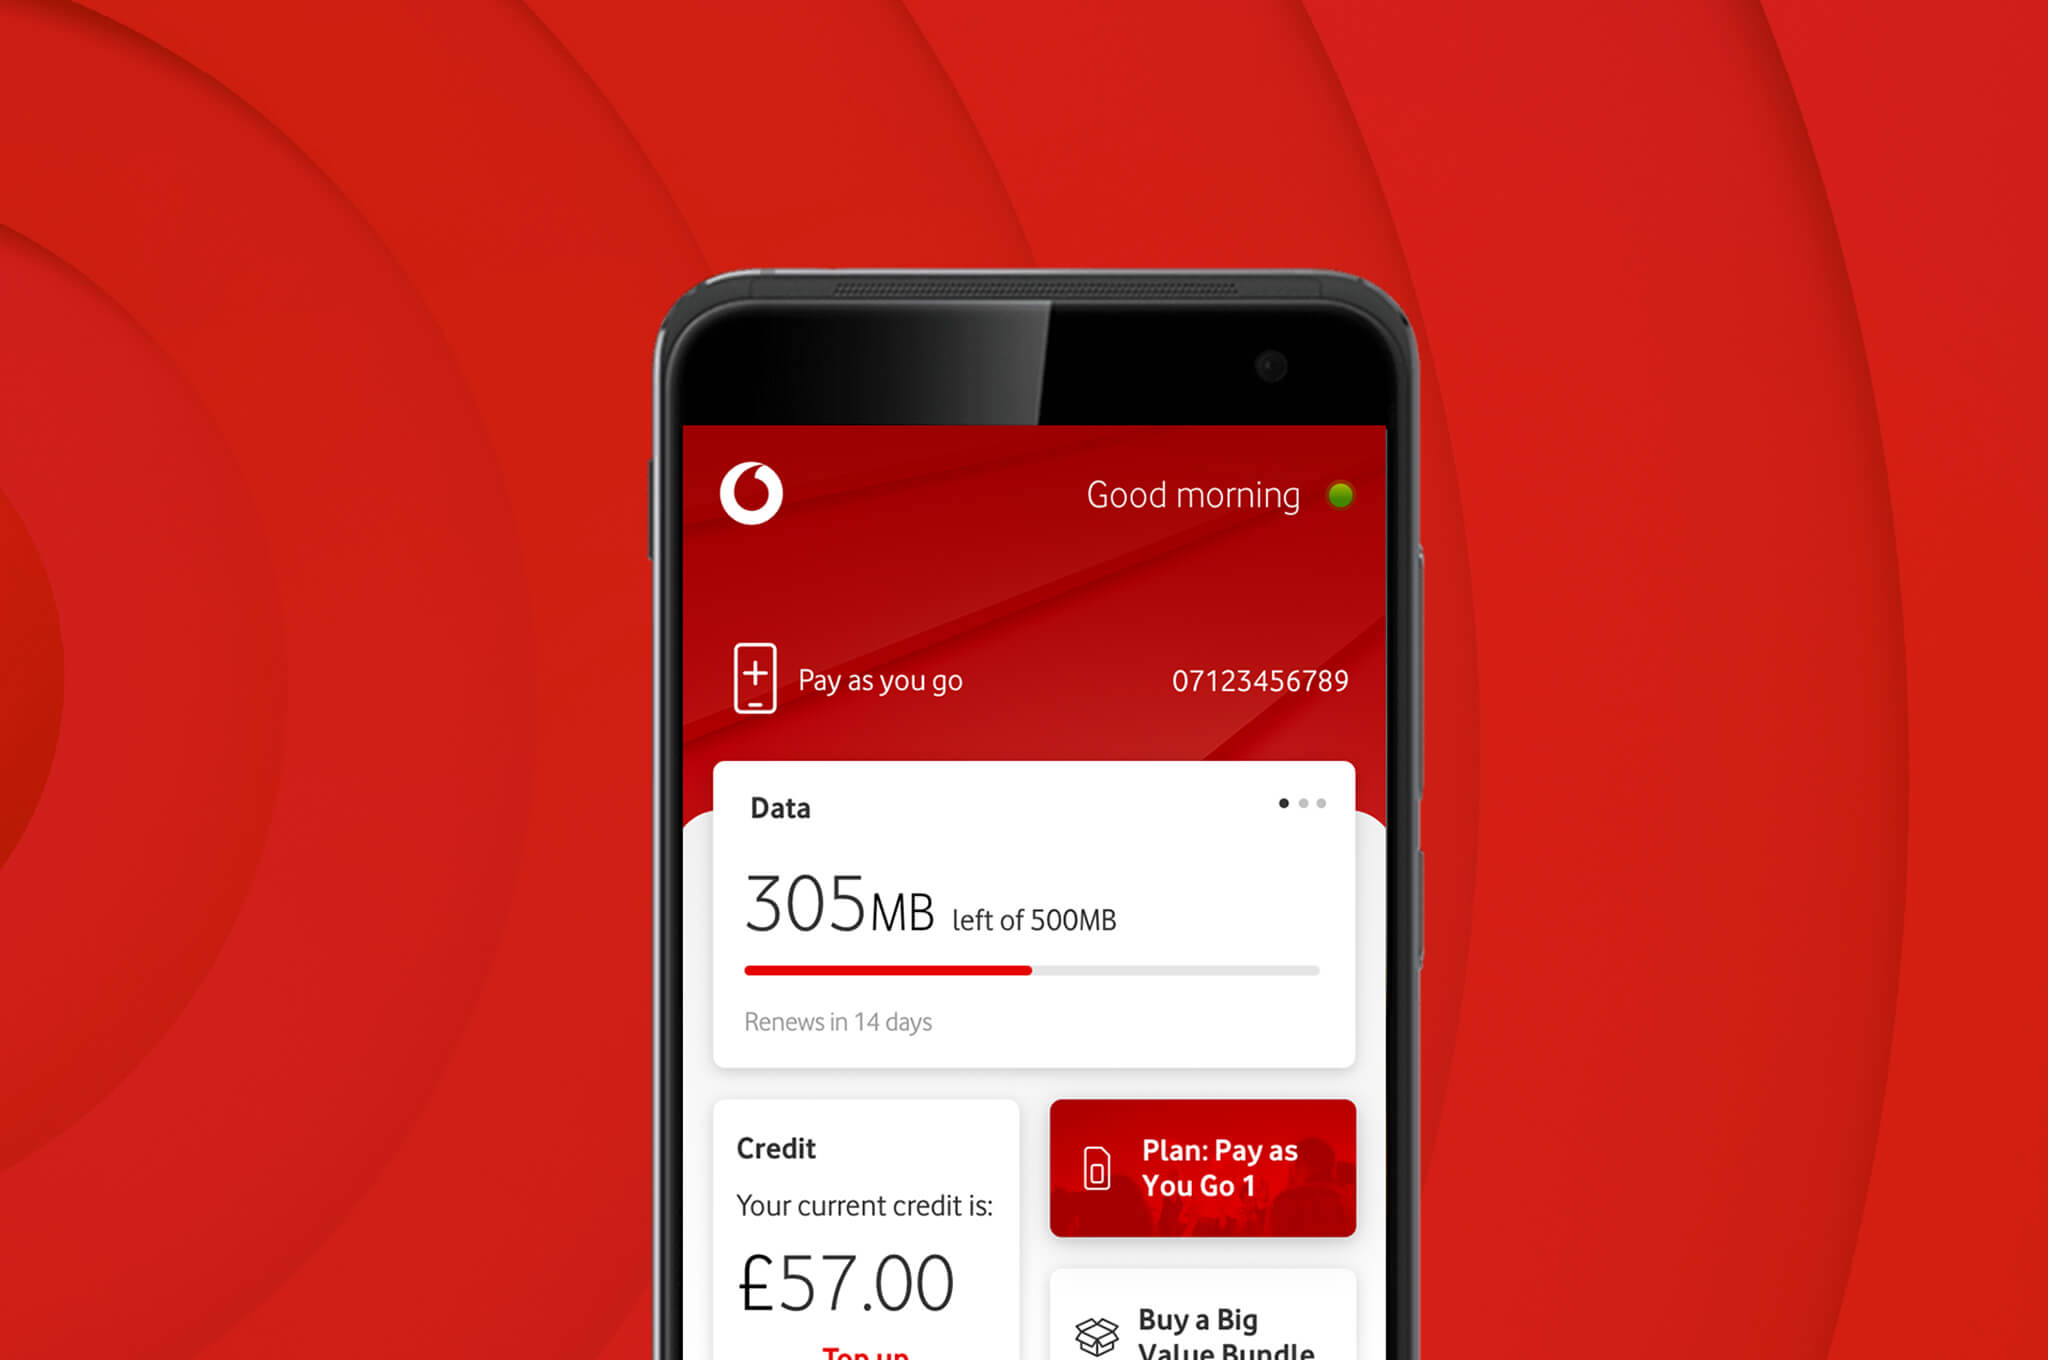 Download the My Vodafone app | Your account, on tap